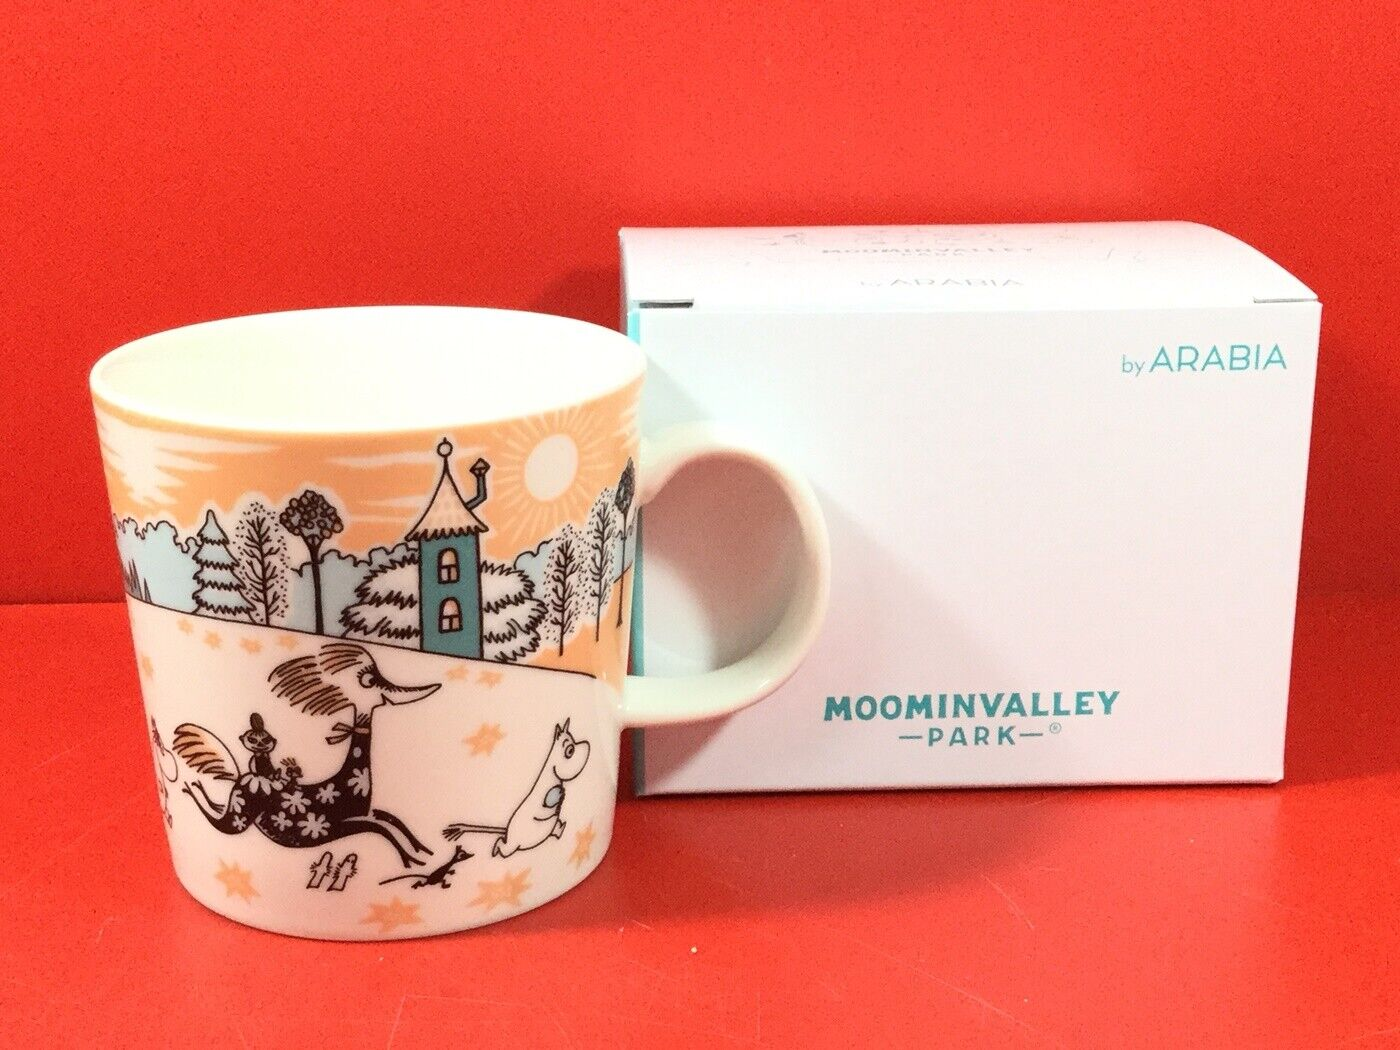 Moomin Valley Park Arabia Moomin Mug 1 Piece Limited F S du Japon